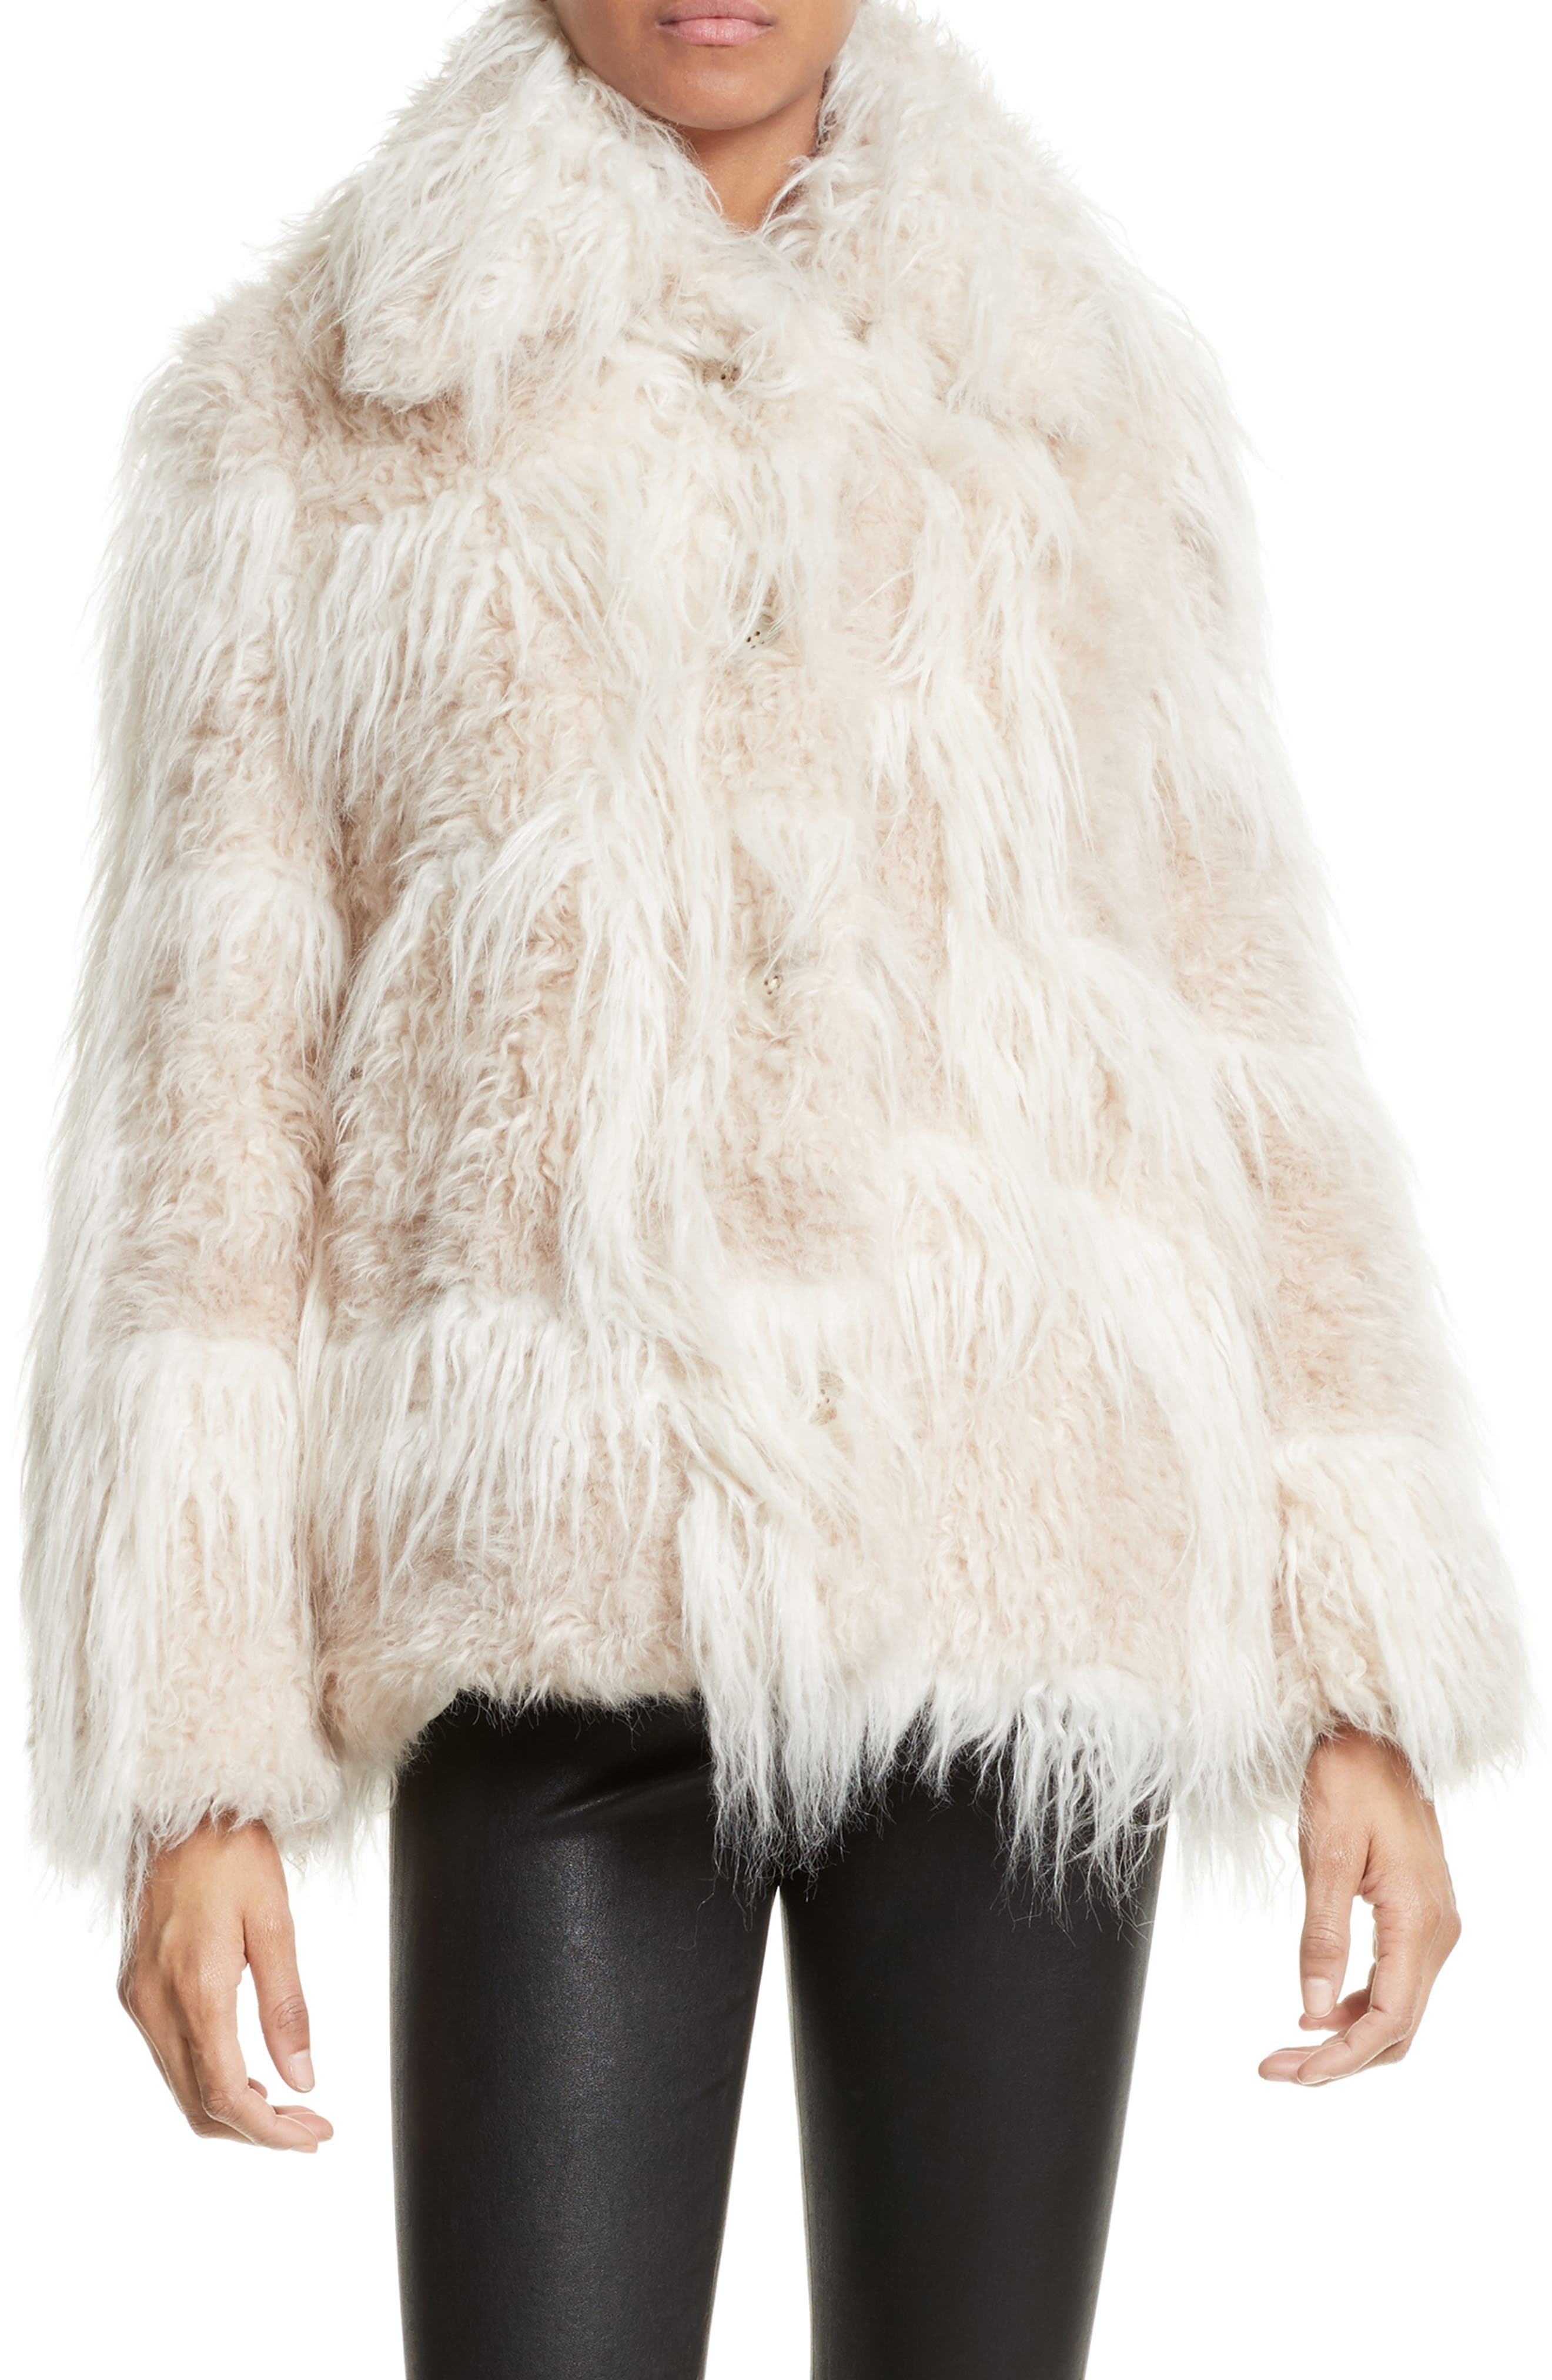 Alternate Image 1 Selected - Helmut Lang Faux Fur Jacket